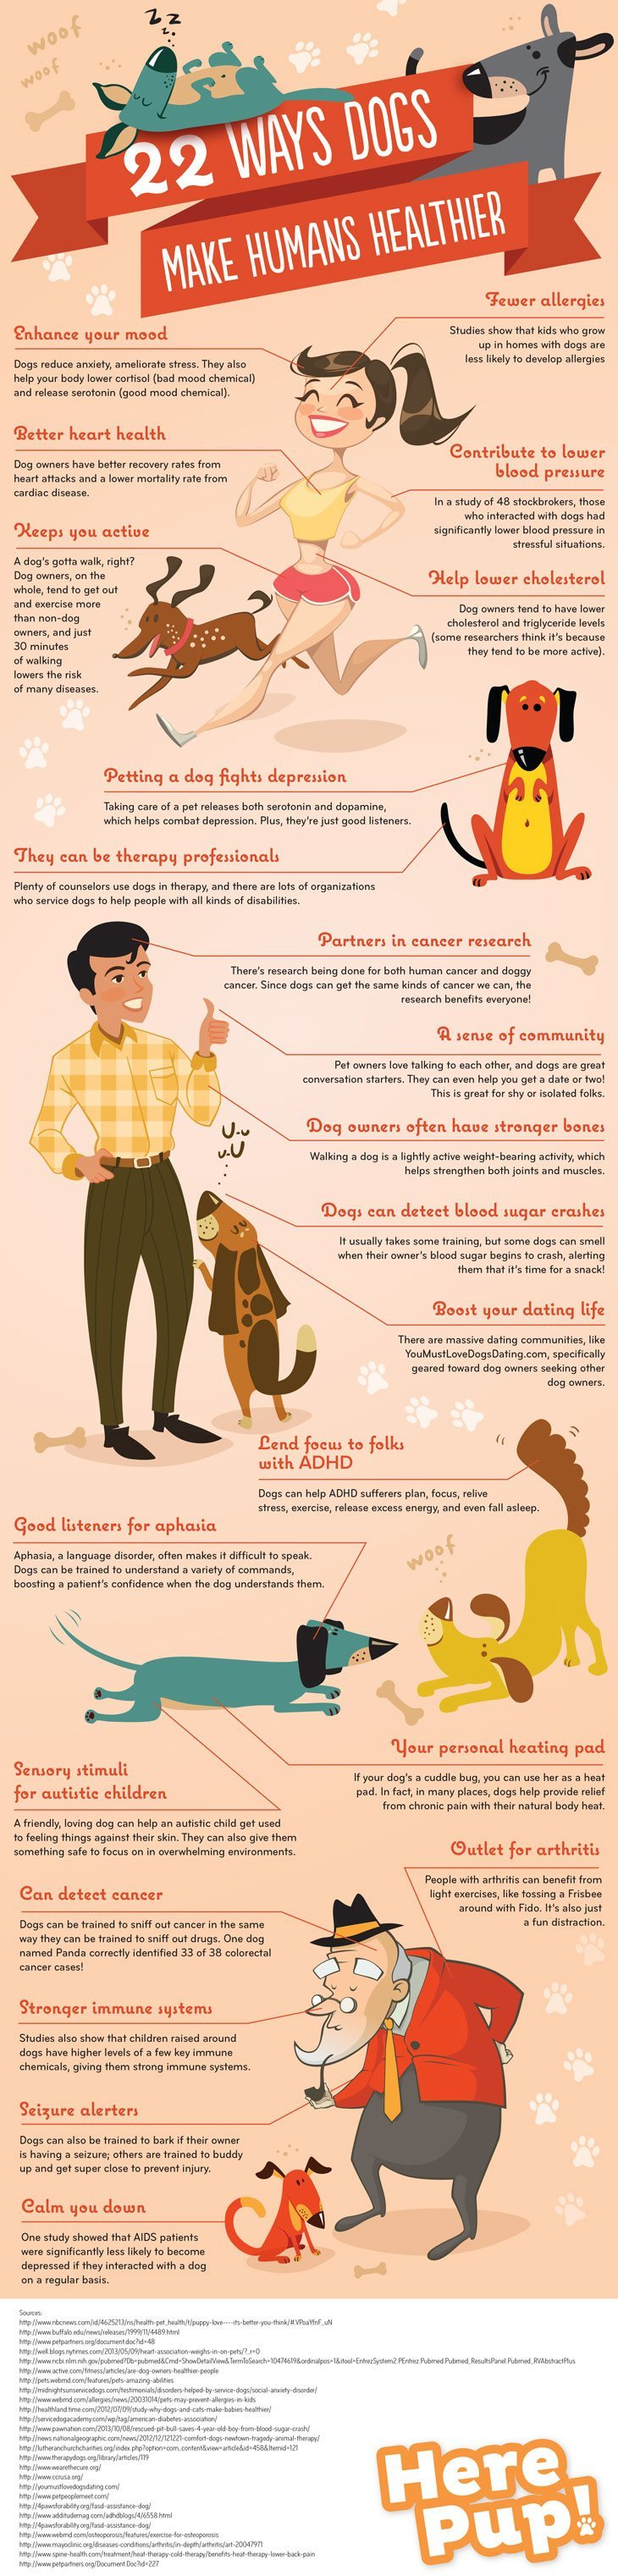 How Dogs Make Humans Healthier